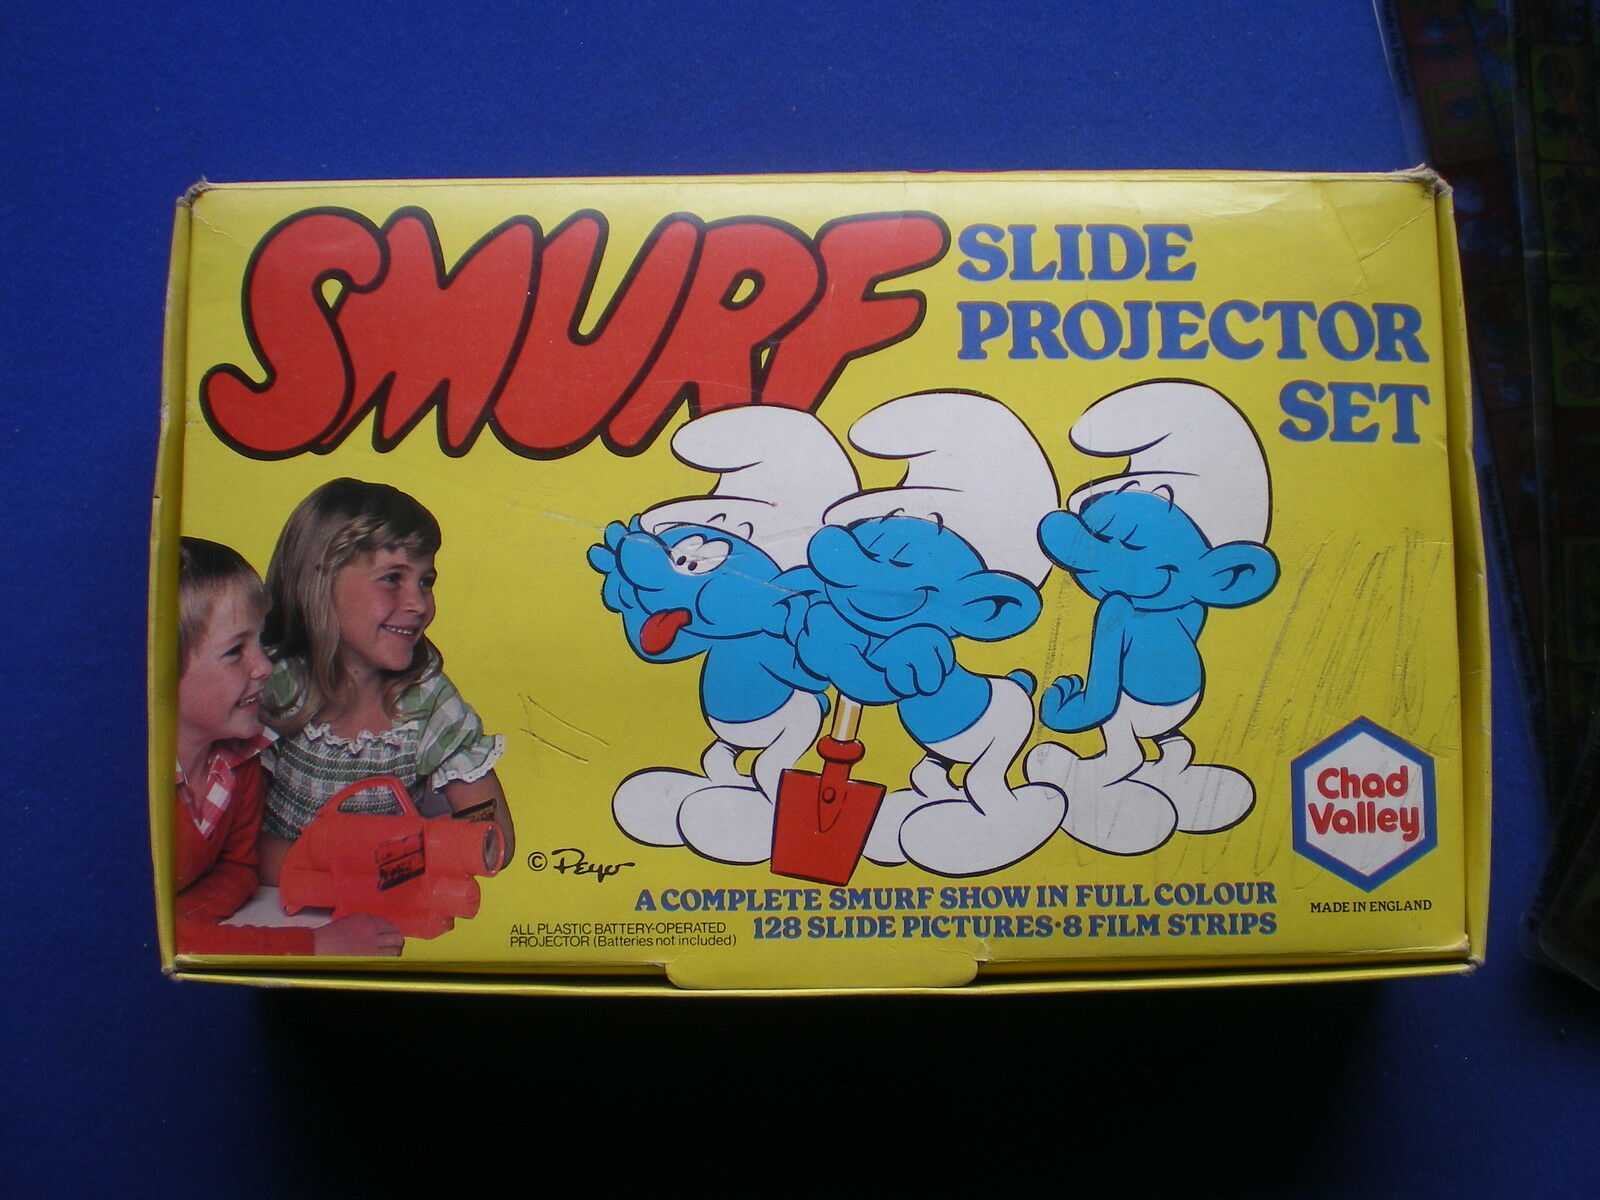 The Smurfs Slide Projector Set   - Chad Valley - UK    1979